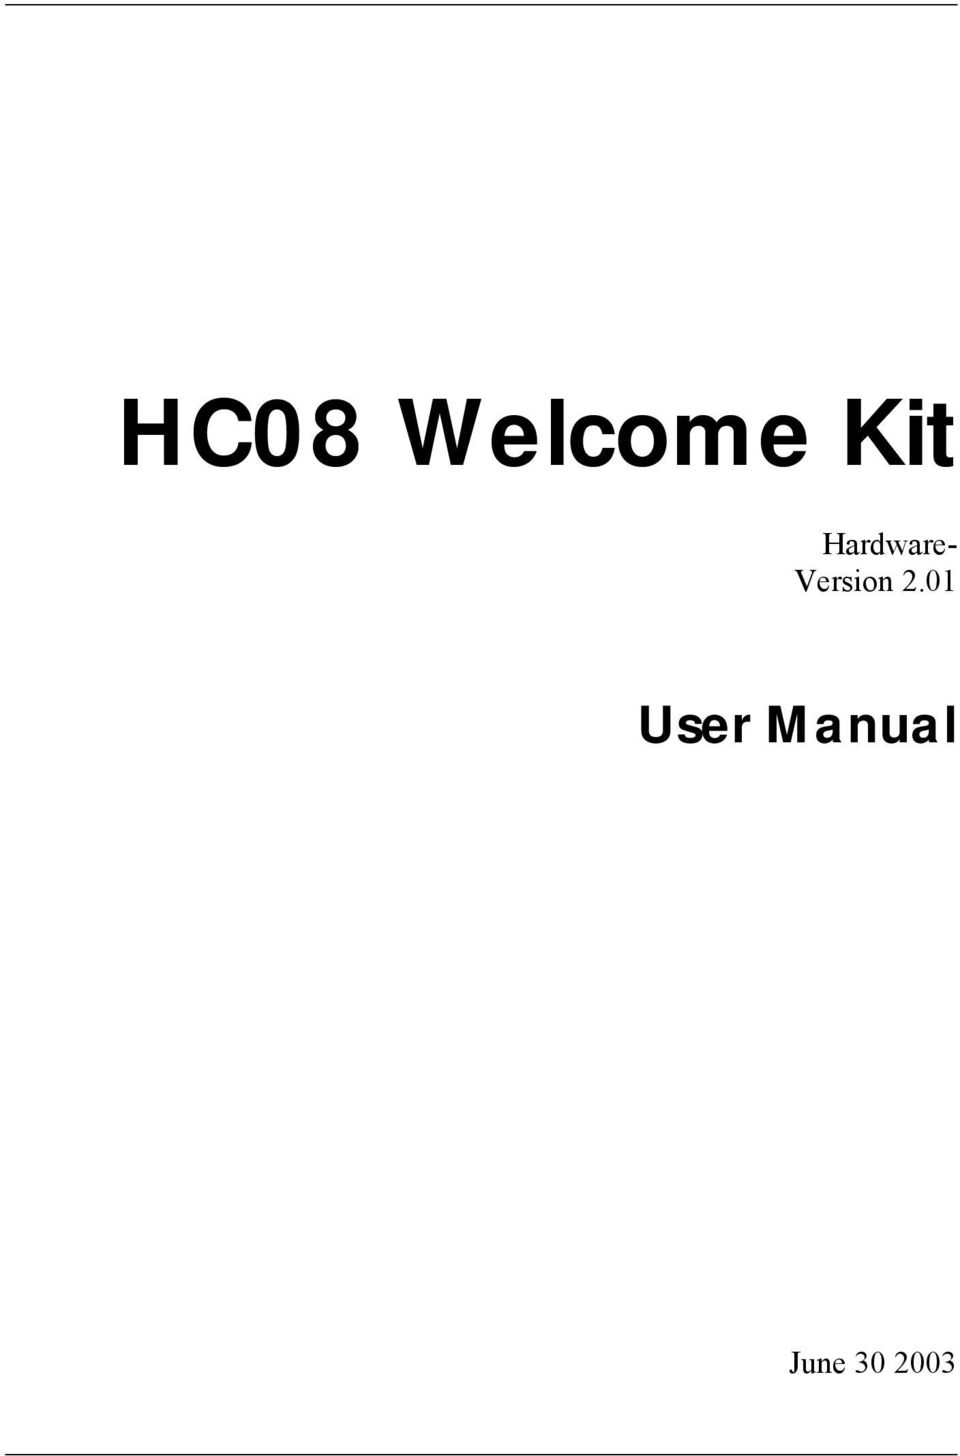 2 HC08 Welcome Kit Copyright (C) by MCT Elektronikladen GbR Hohe Str D  Leipzig Telefon: +49-(0) Fax: +49-(0) Web: This manual and the product  described ...